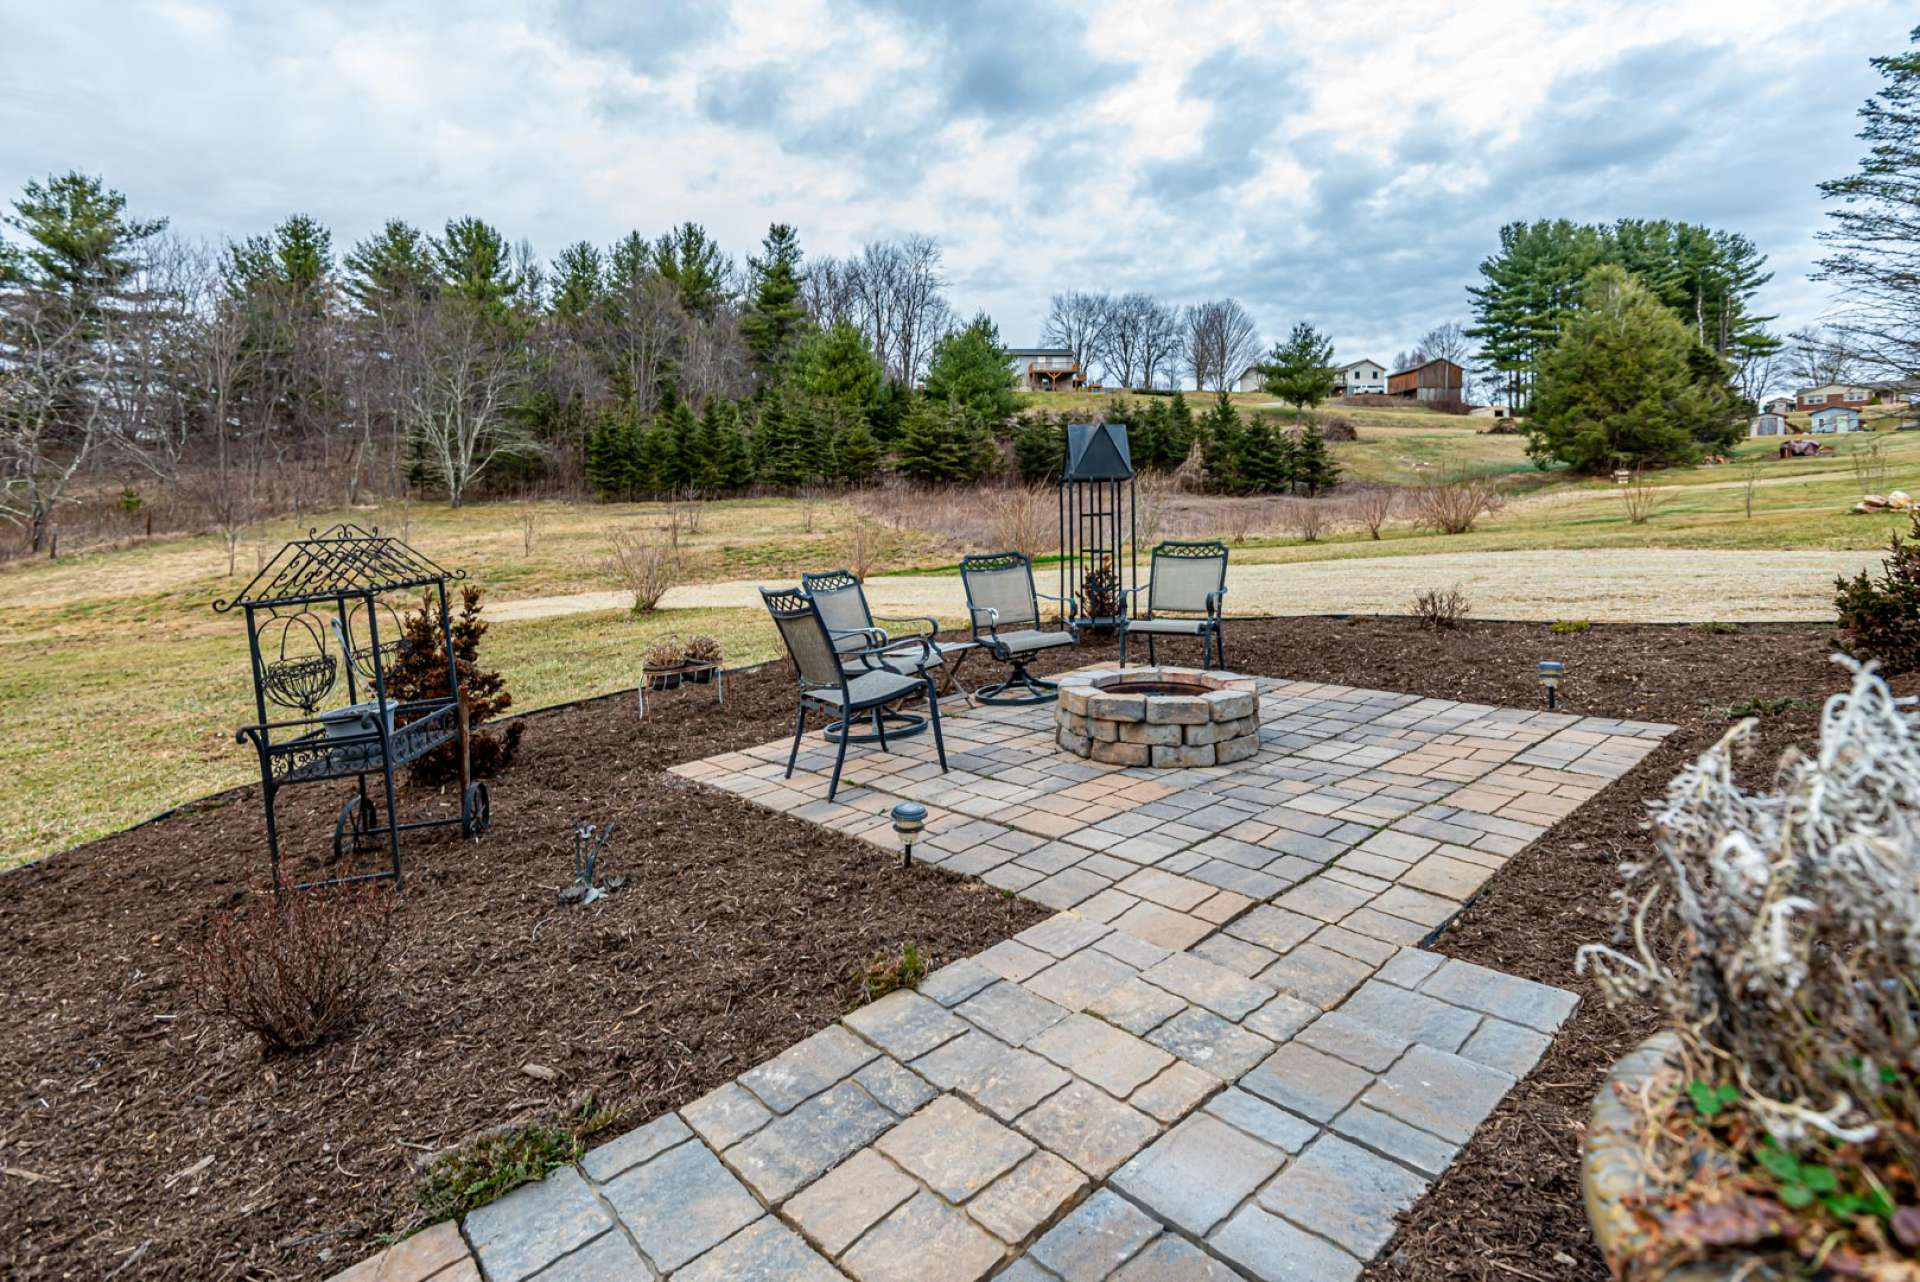 This outdoor entertaining area is perfect for sharing stories and memories around a fire in the firepit while making smores and new memories.